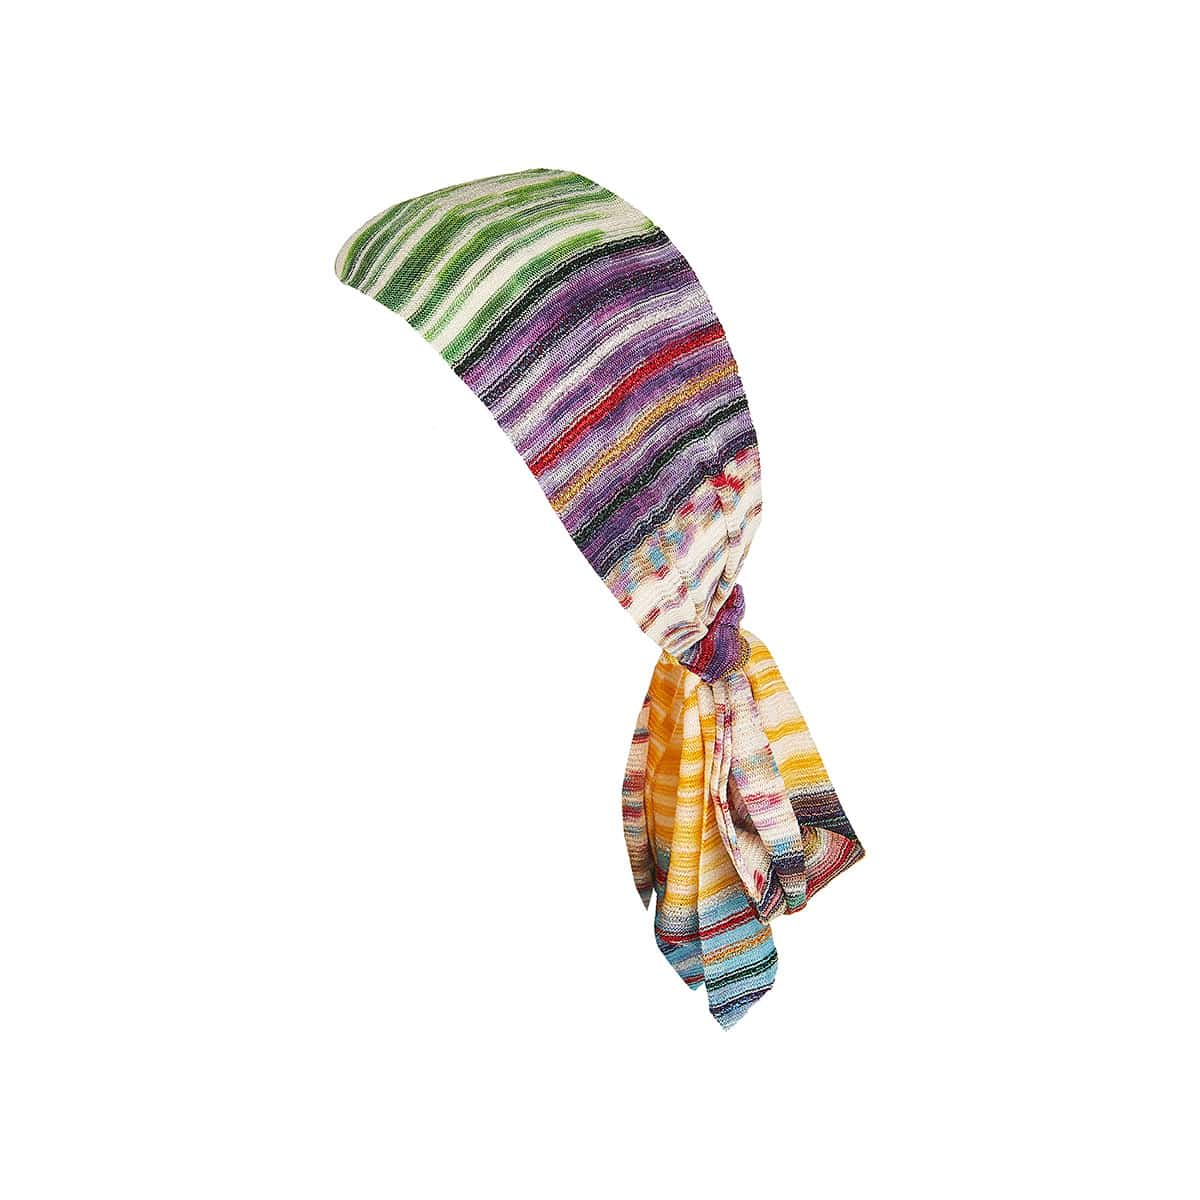 Striped-knit headband with ties